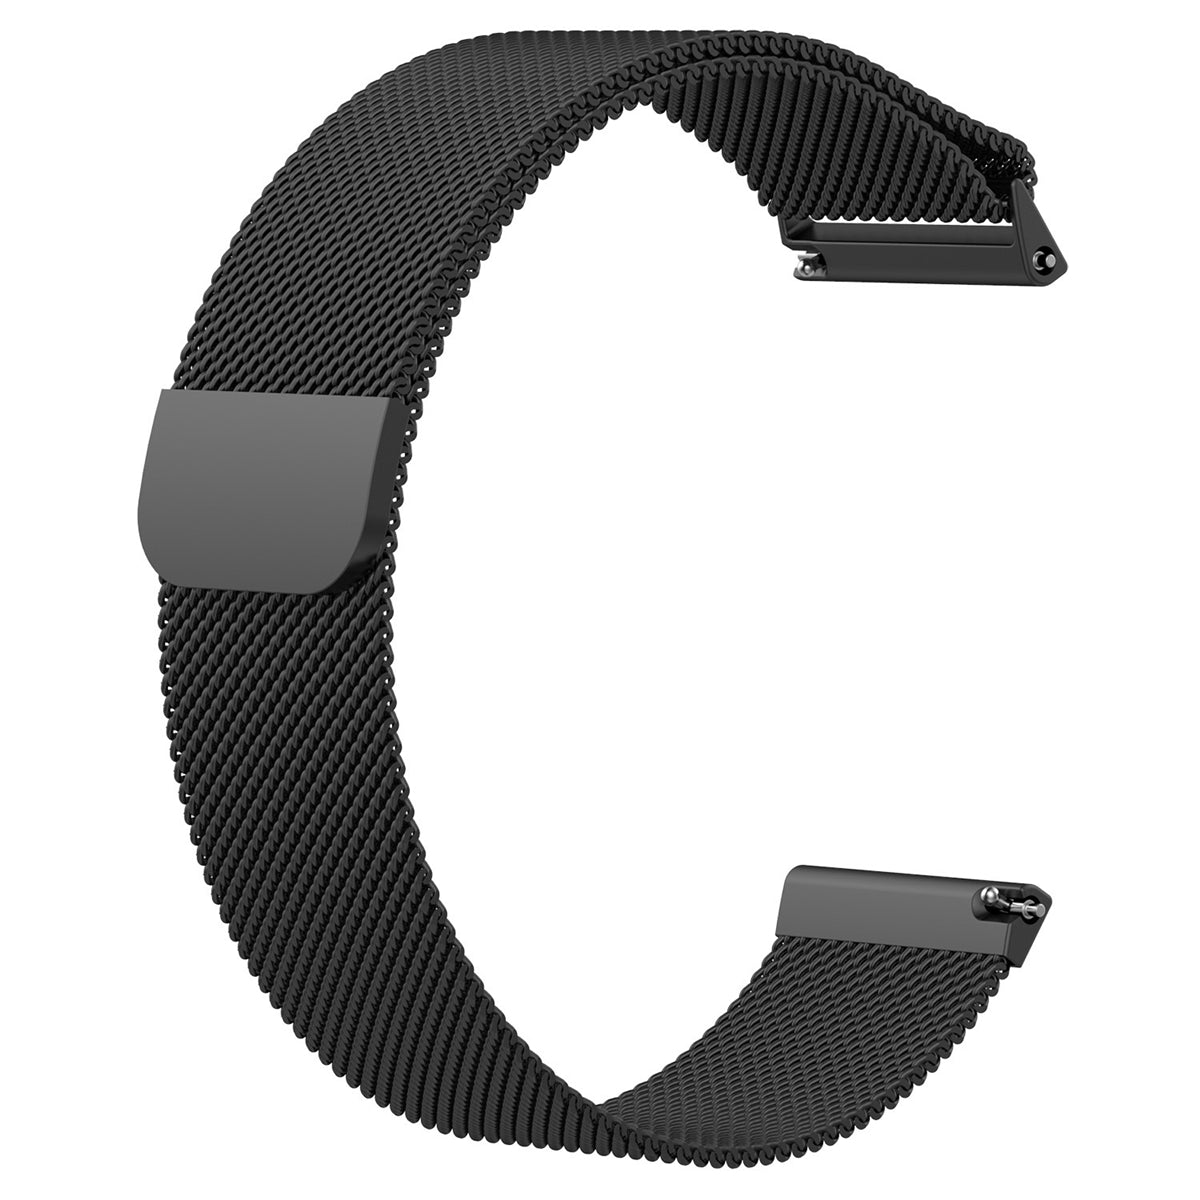 Bakeey 20mm Replacement Stainless Steel Wrist Watch Band Strap for Fitbit Versa